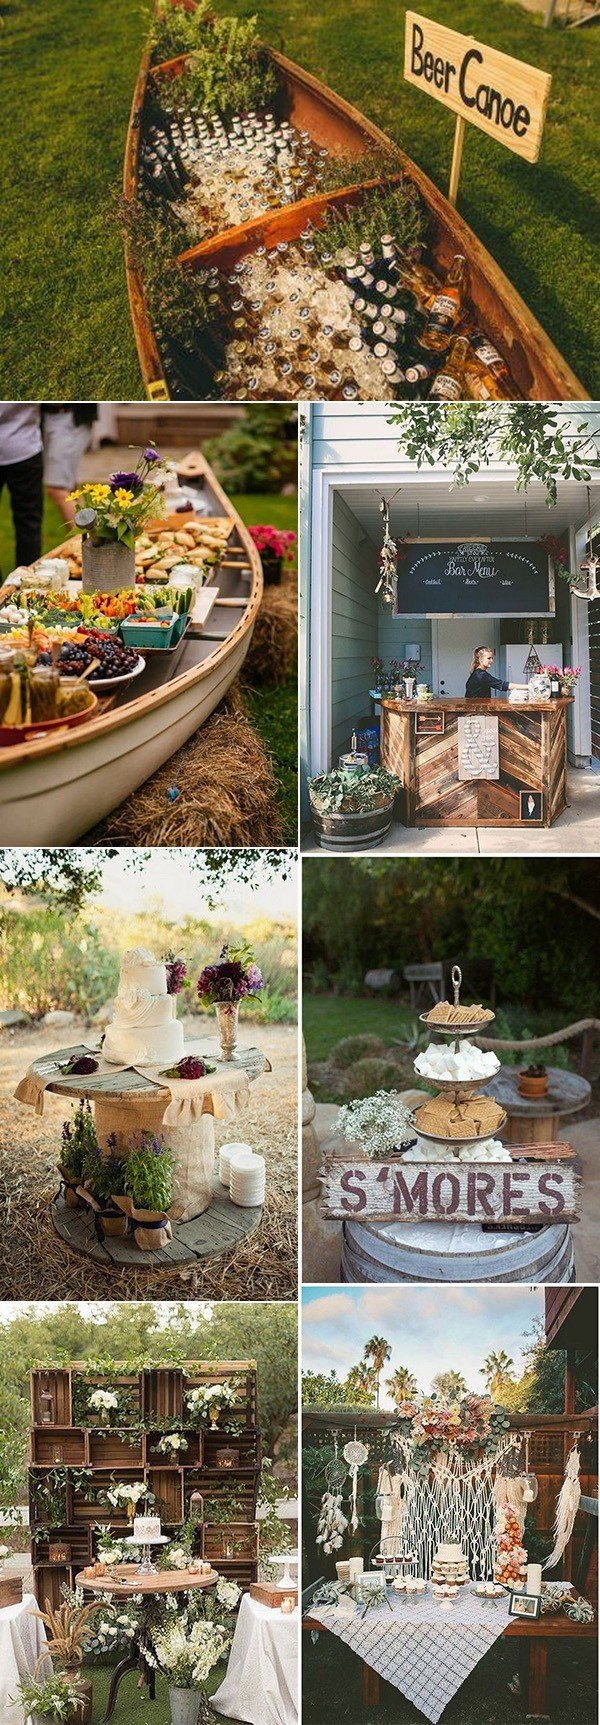 boho chic outdoor wedding food and drink station ideas